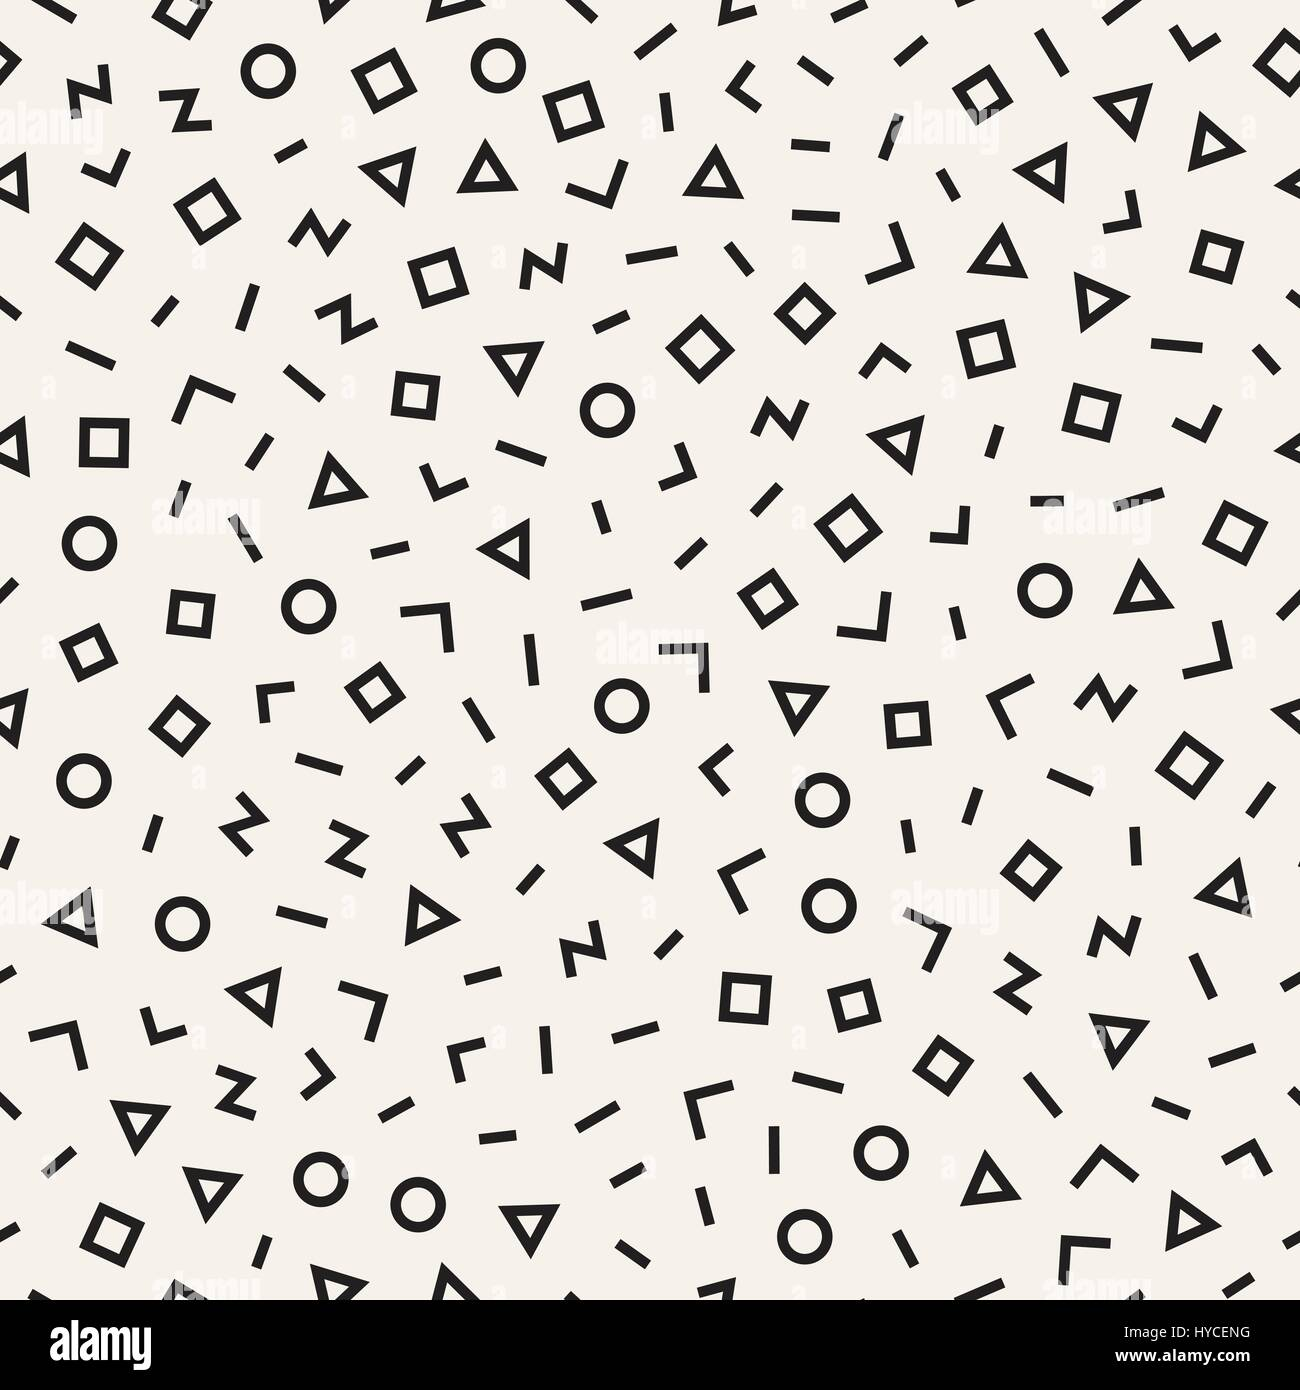 Scattered Geometric Line Shapes. Abstract Background Design. Vector Seamless Black and White Pattern. - Stock Image